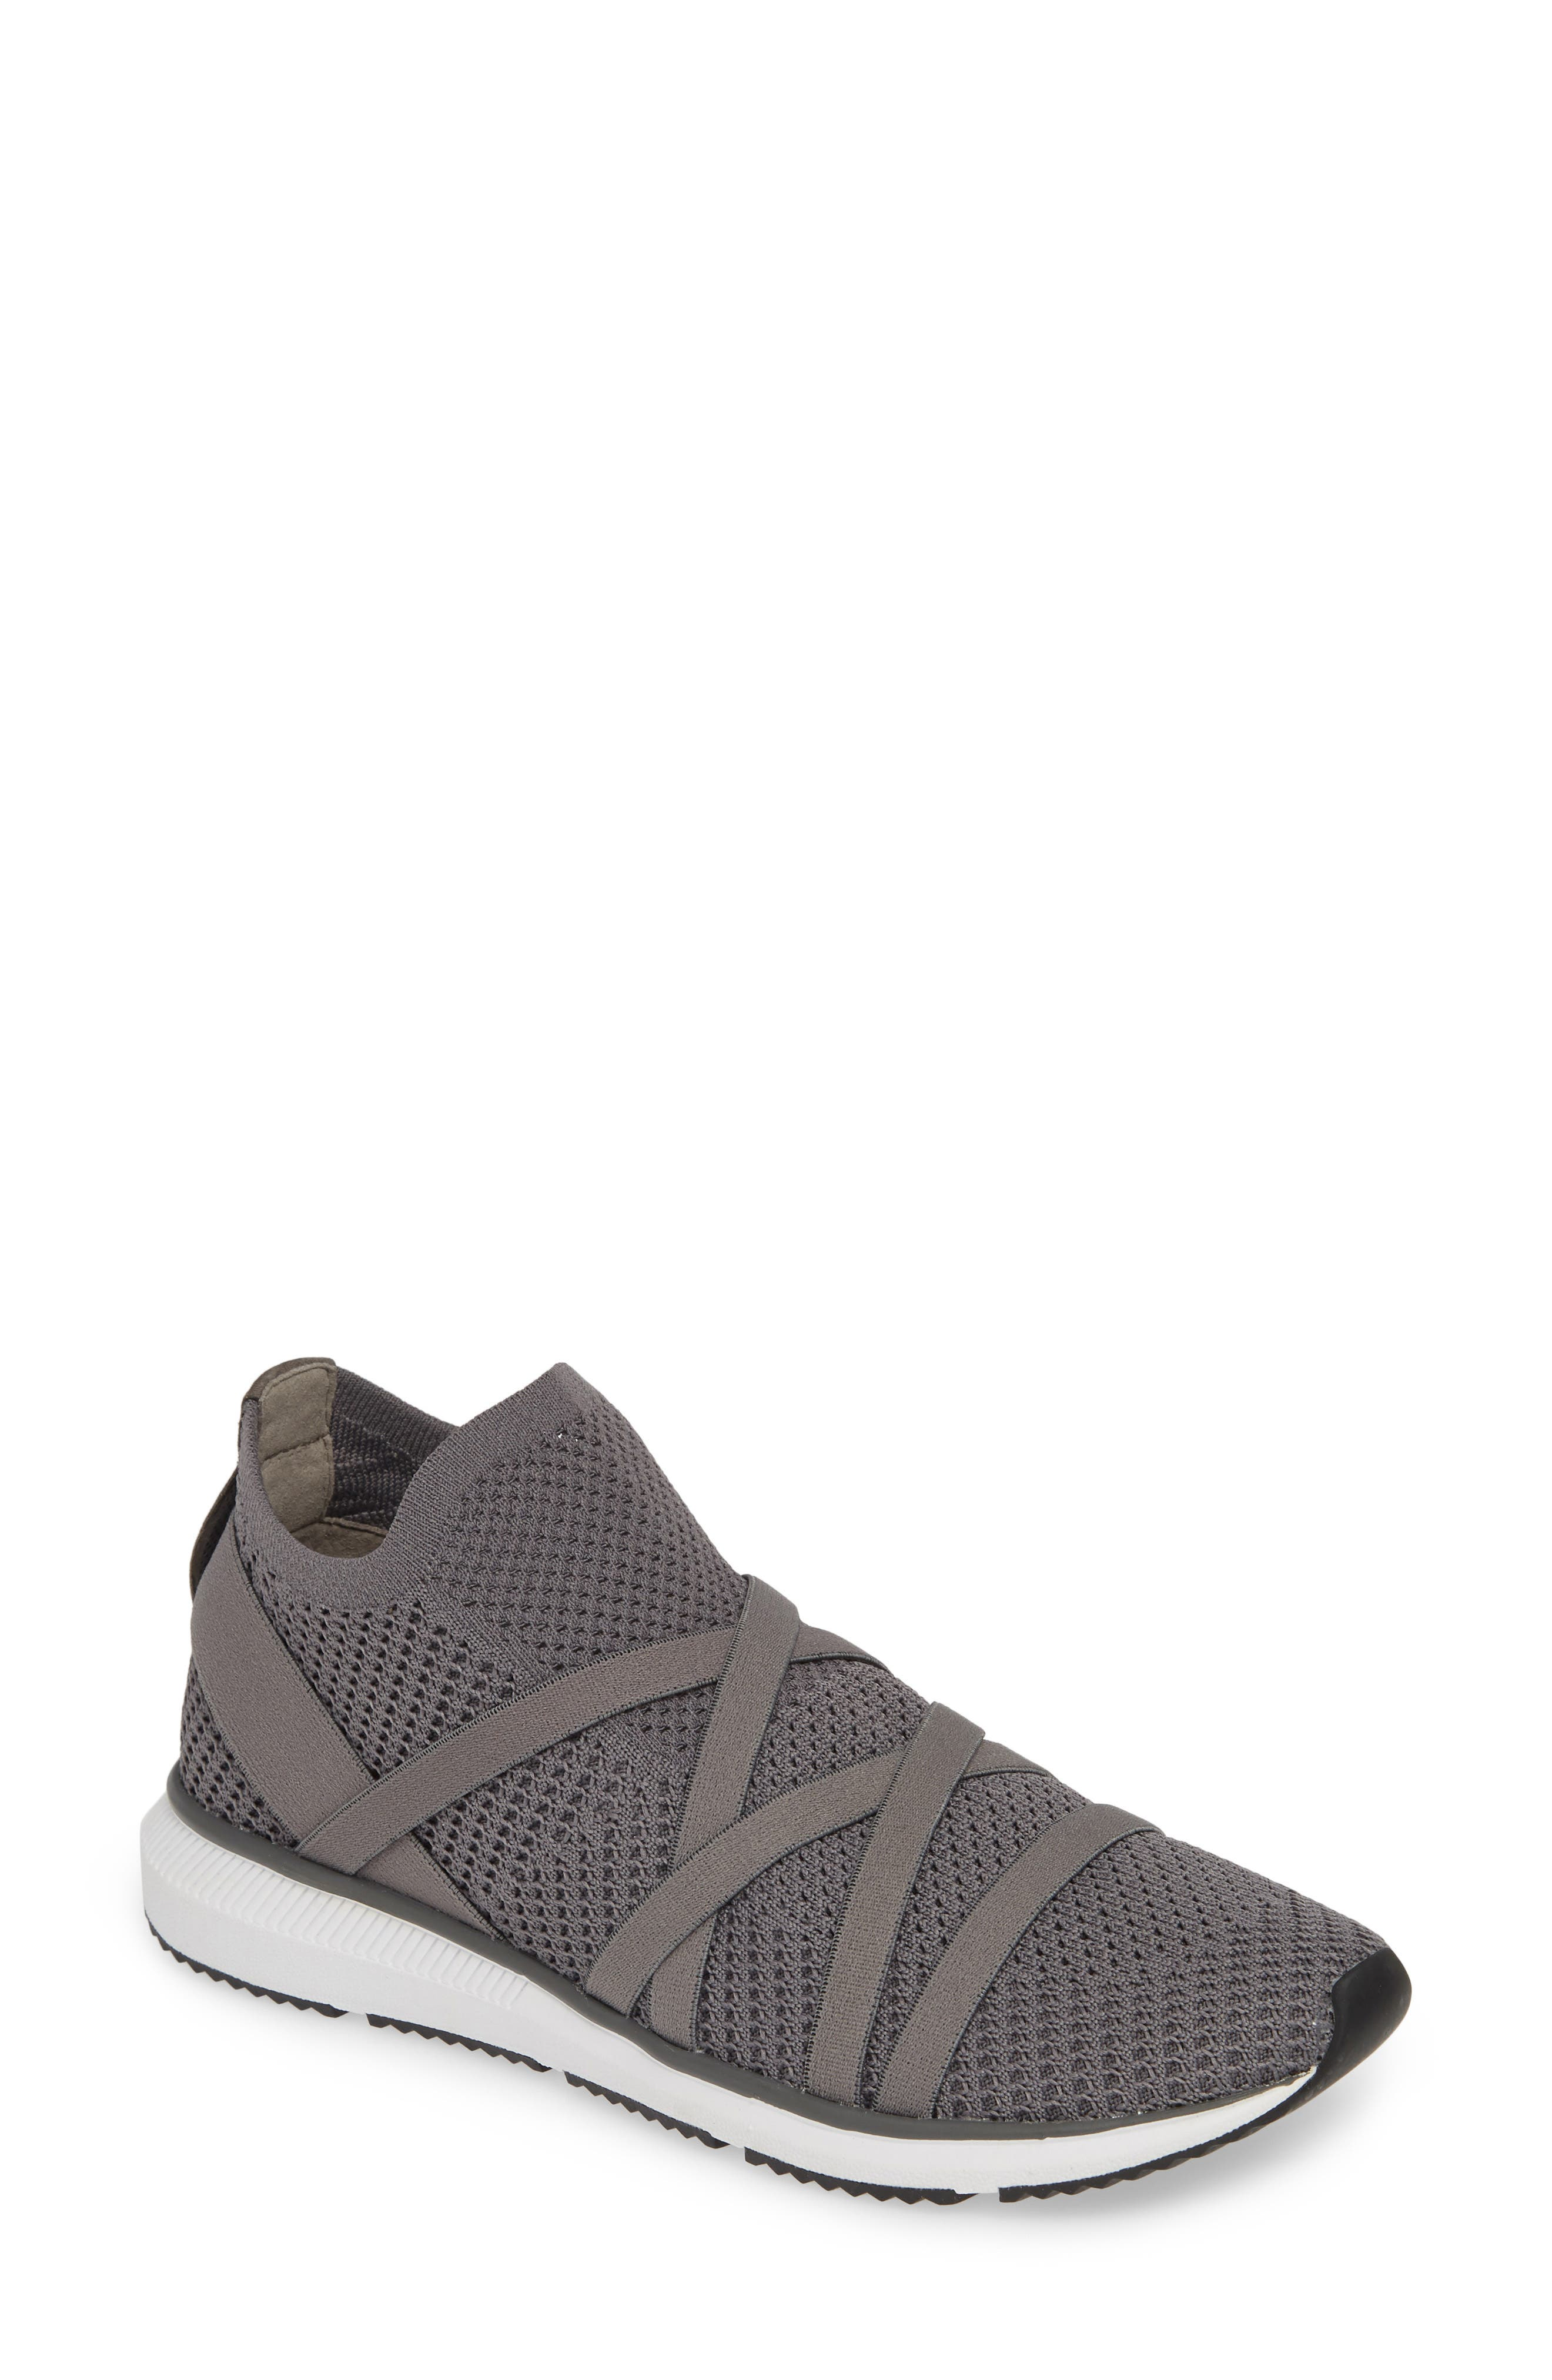 EILEEN FISHER Xanady Woven Slip-On Sneaker, Main, color, GRAPHITE FABRIC